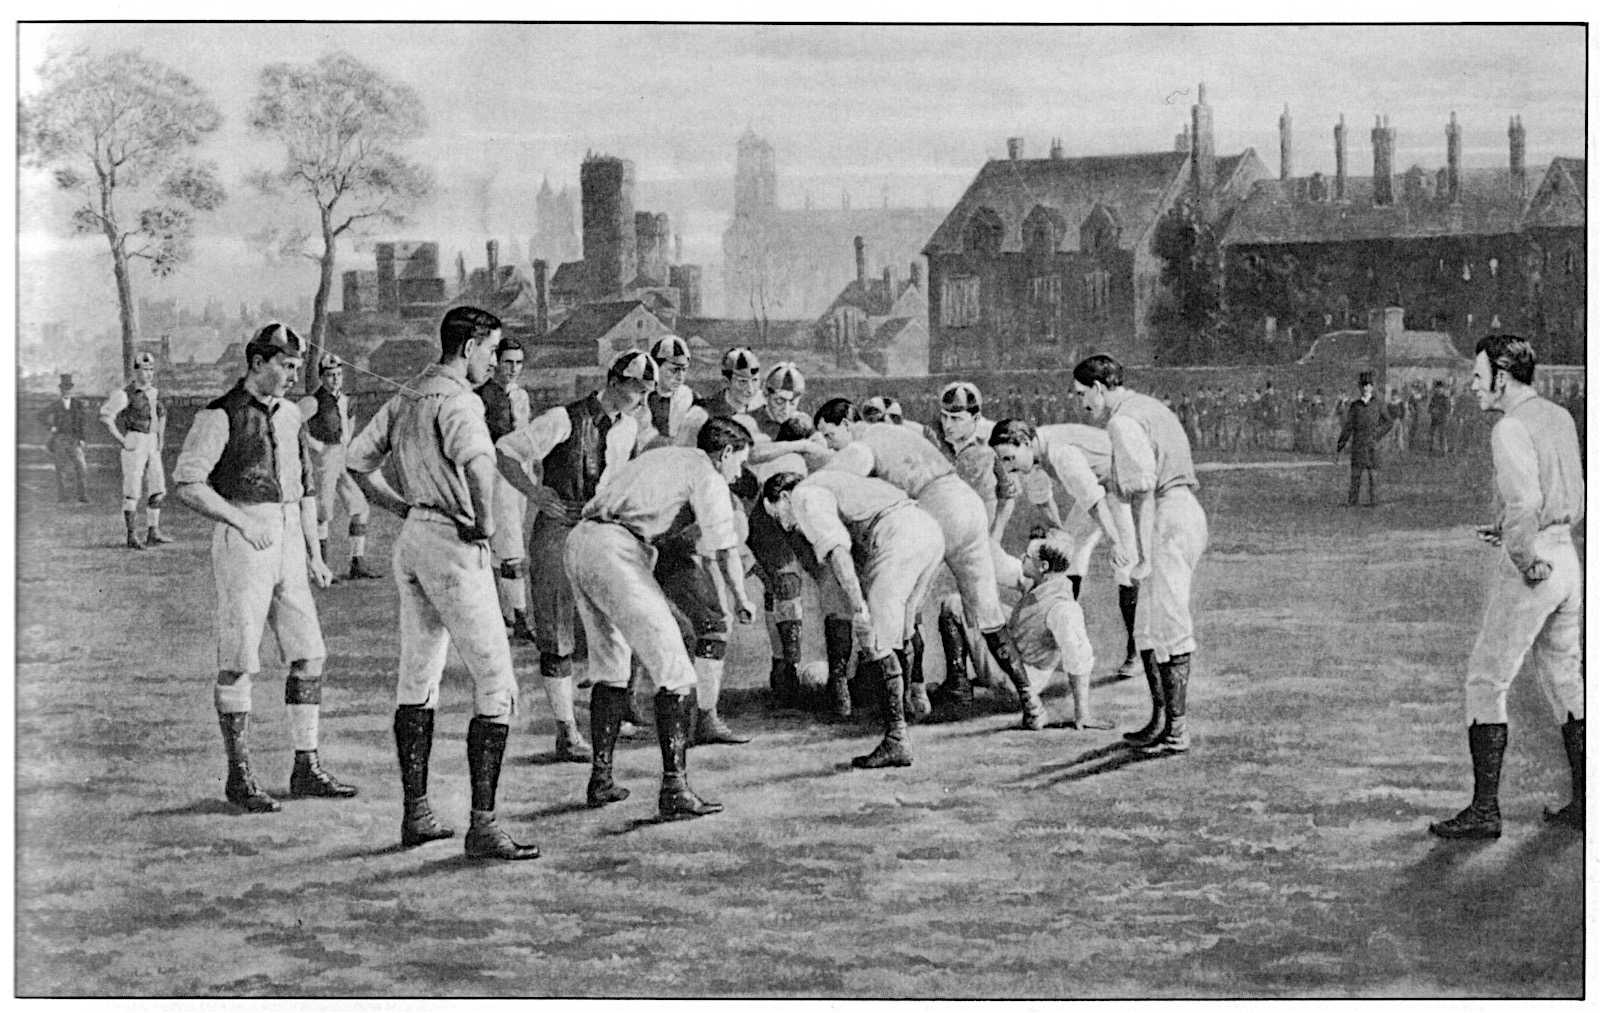 Eton Field Game 'Bully'